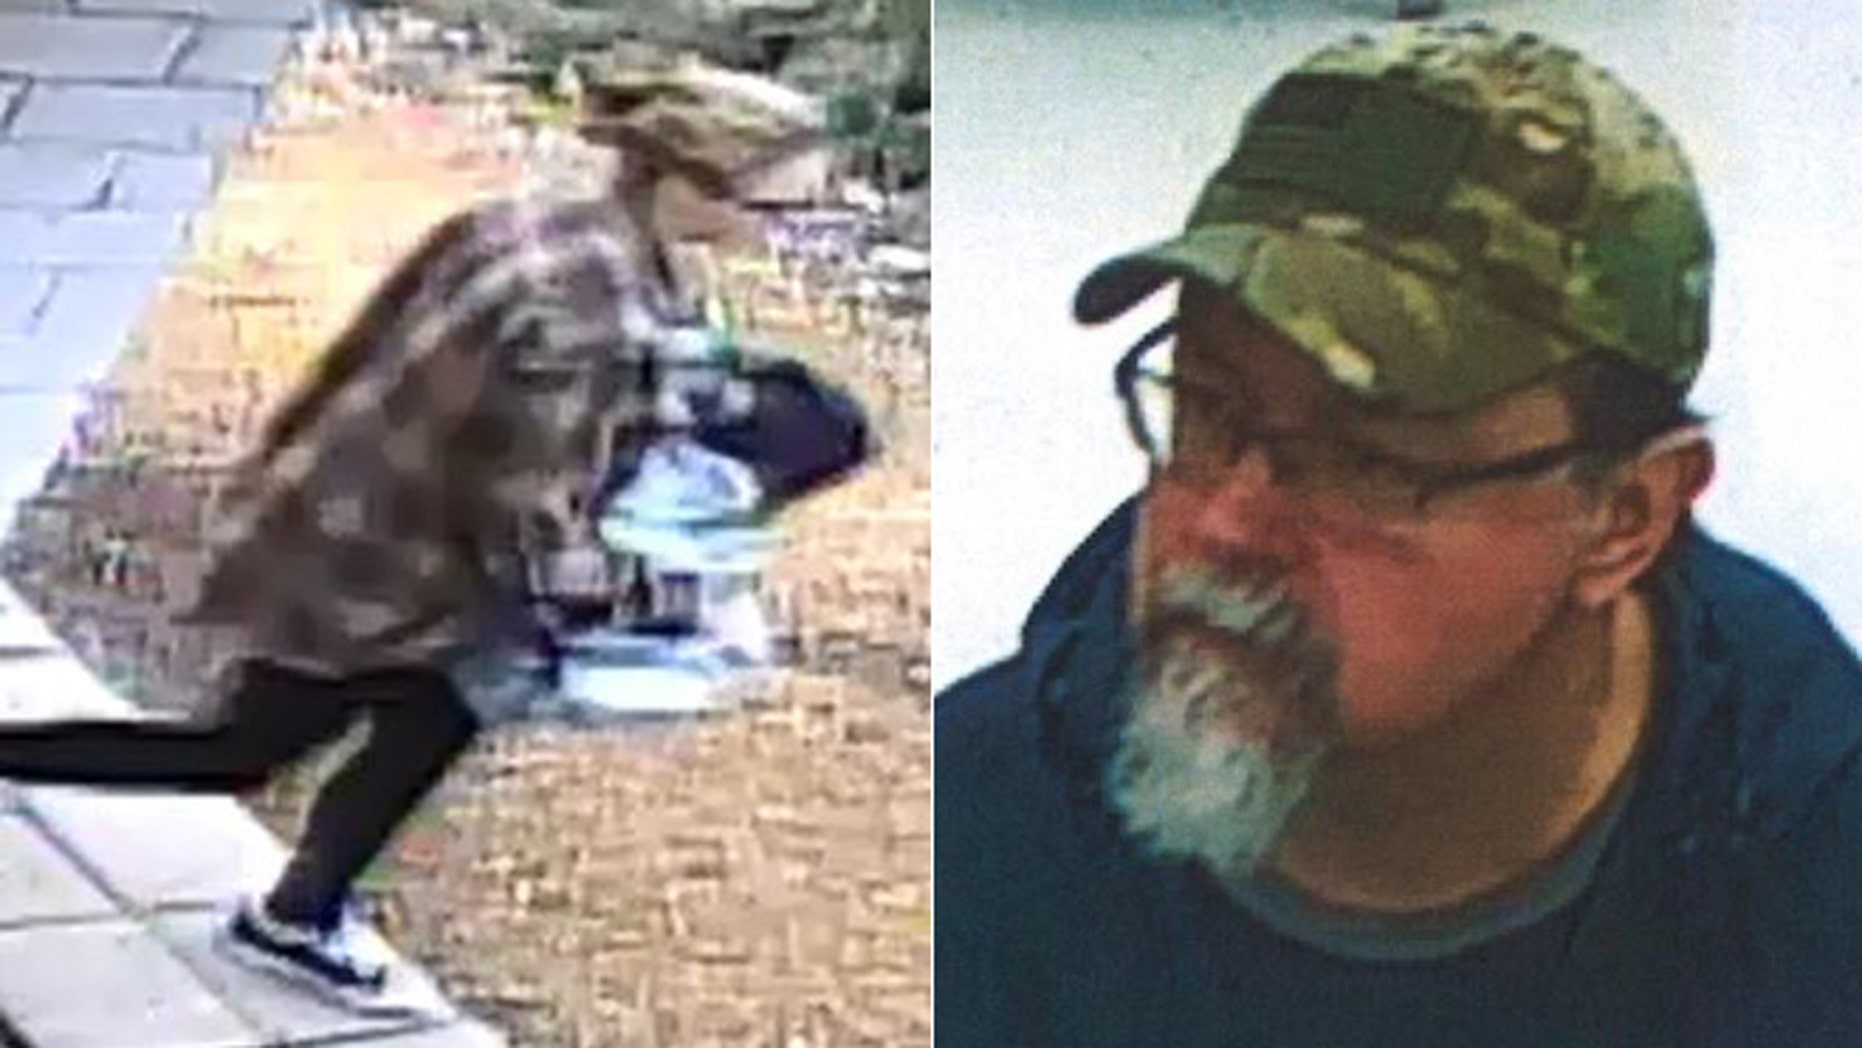 Elizabeth Thomas (left) is suspected of being kidnapped by ex-teacher Tad Cummins (right)